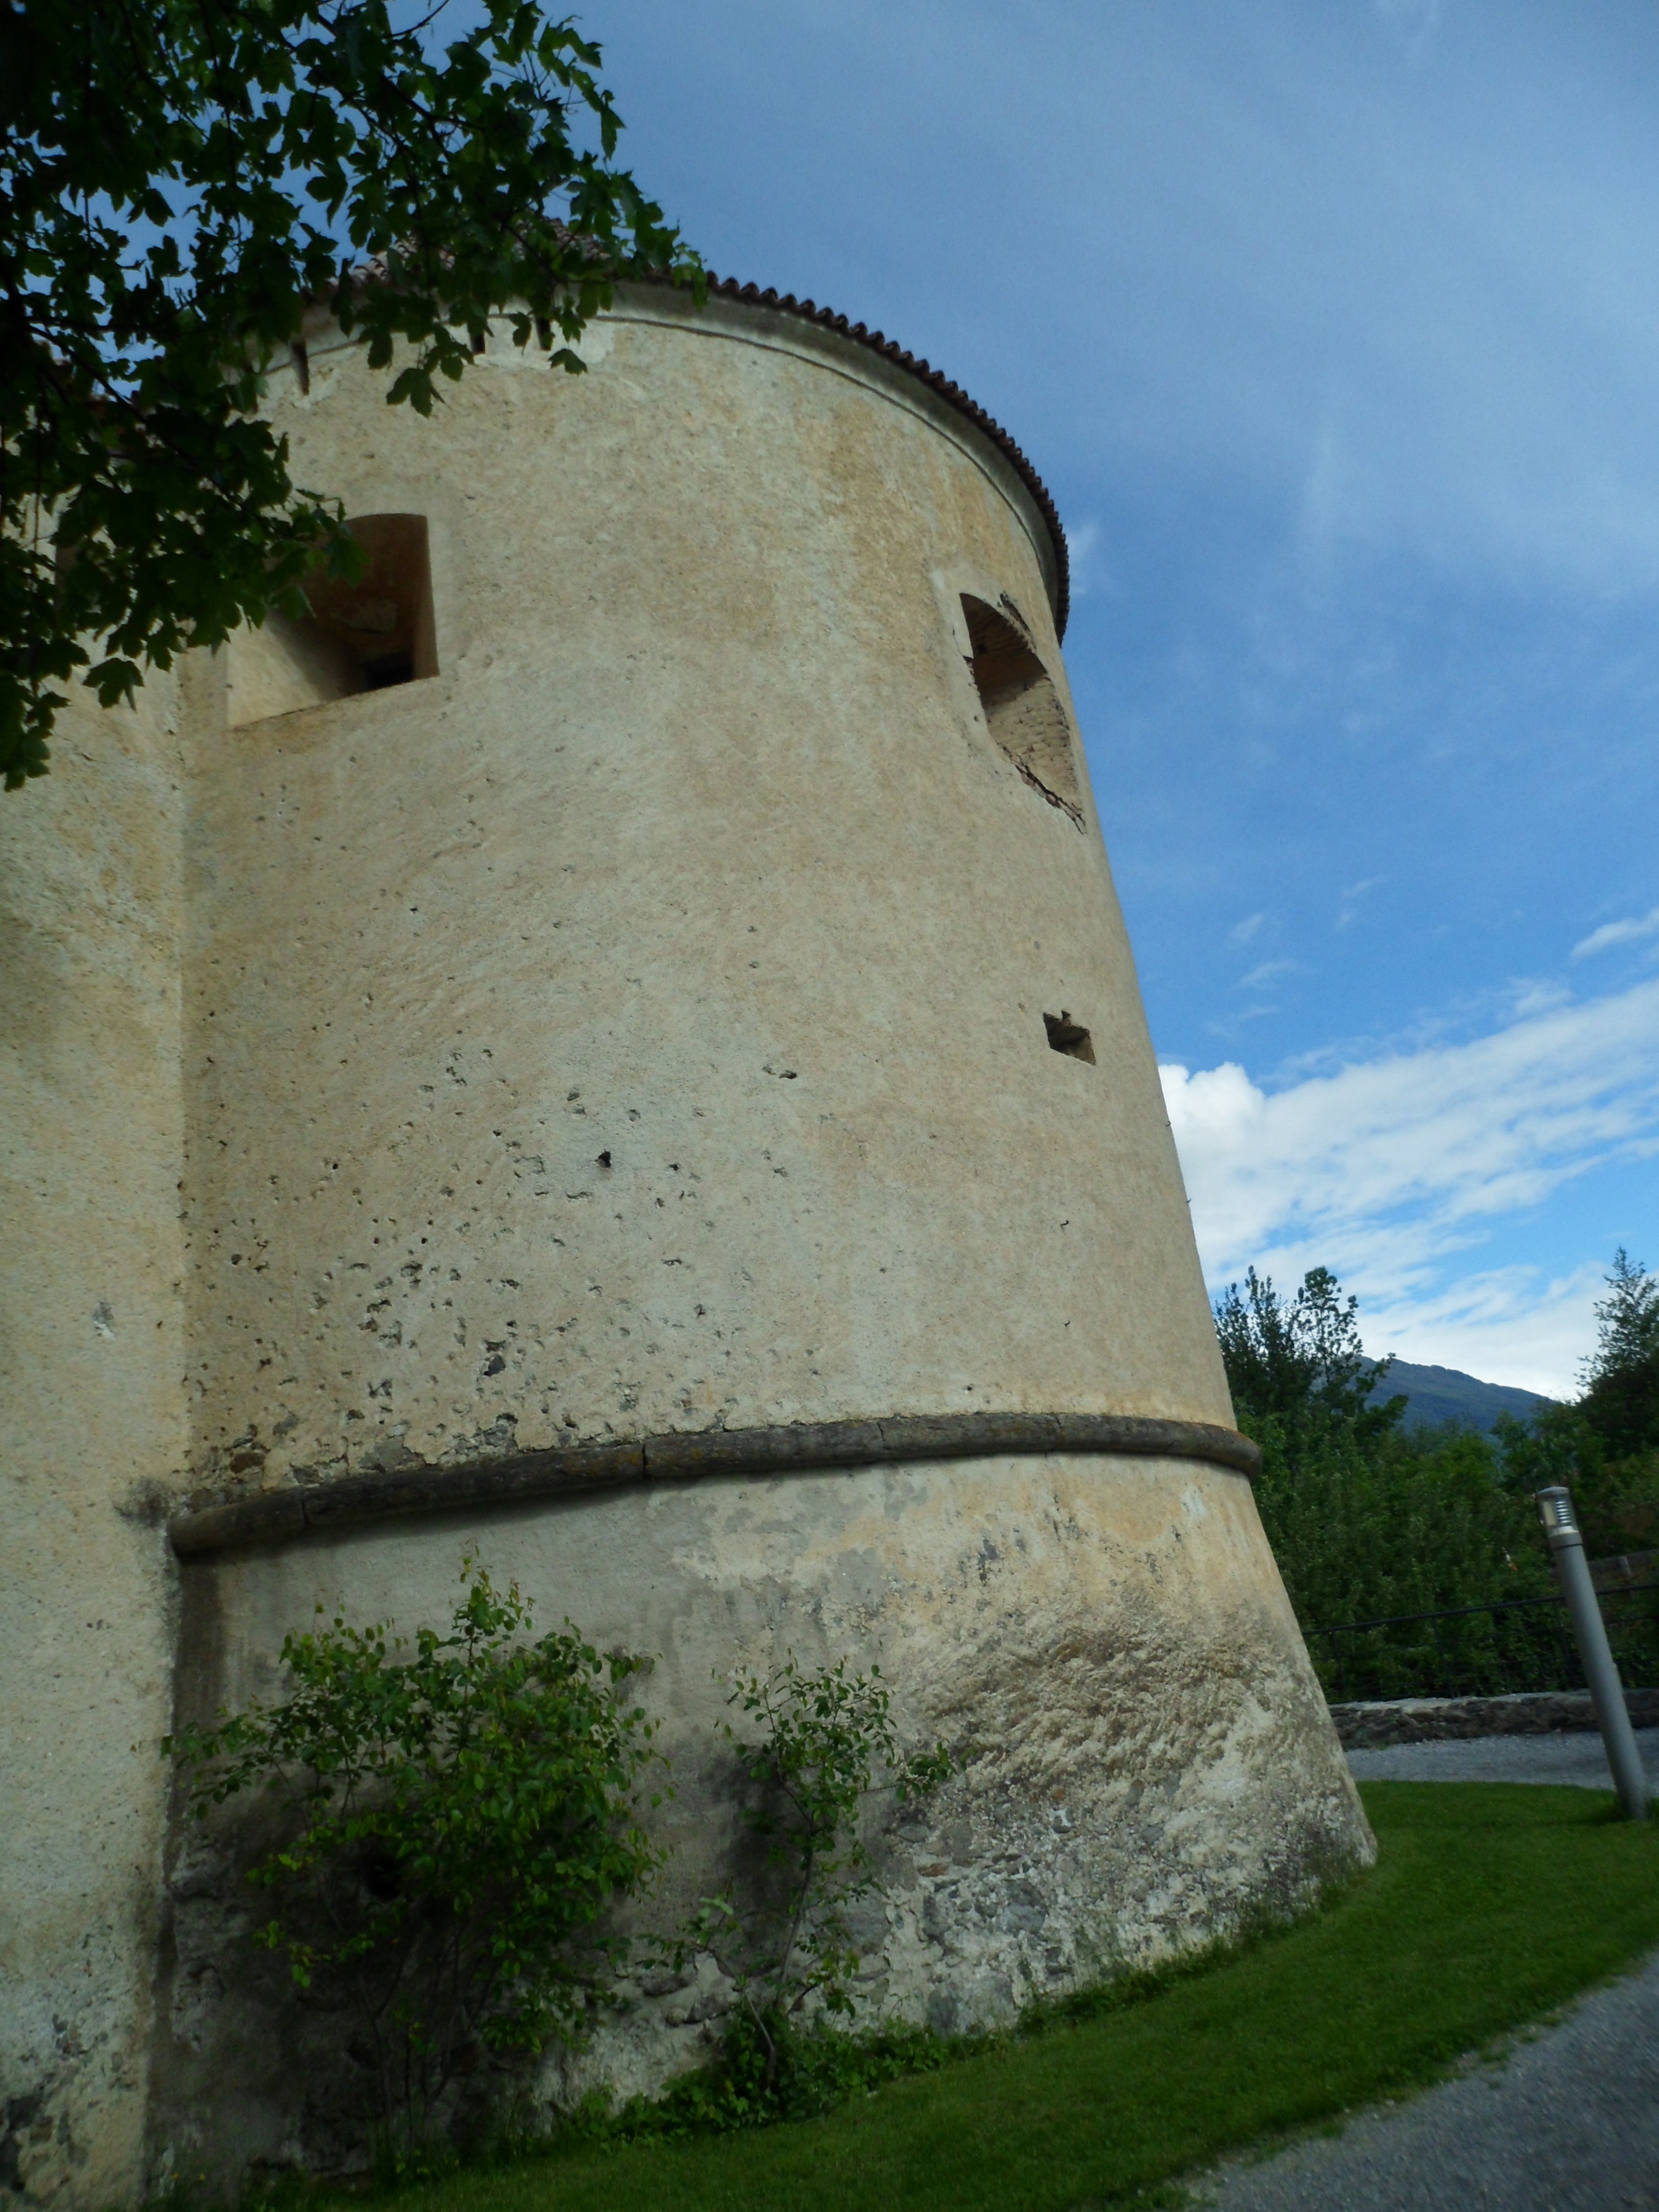 Photo of a plastered round tower with a conical roof and large loopholes near the top